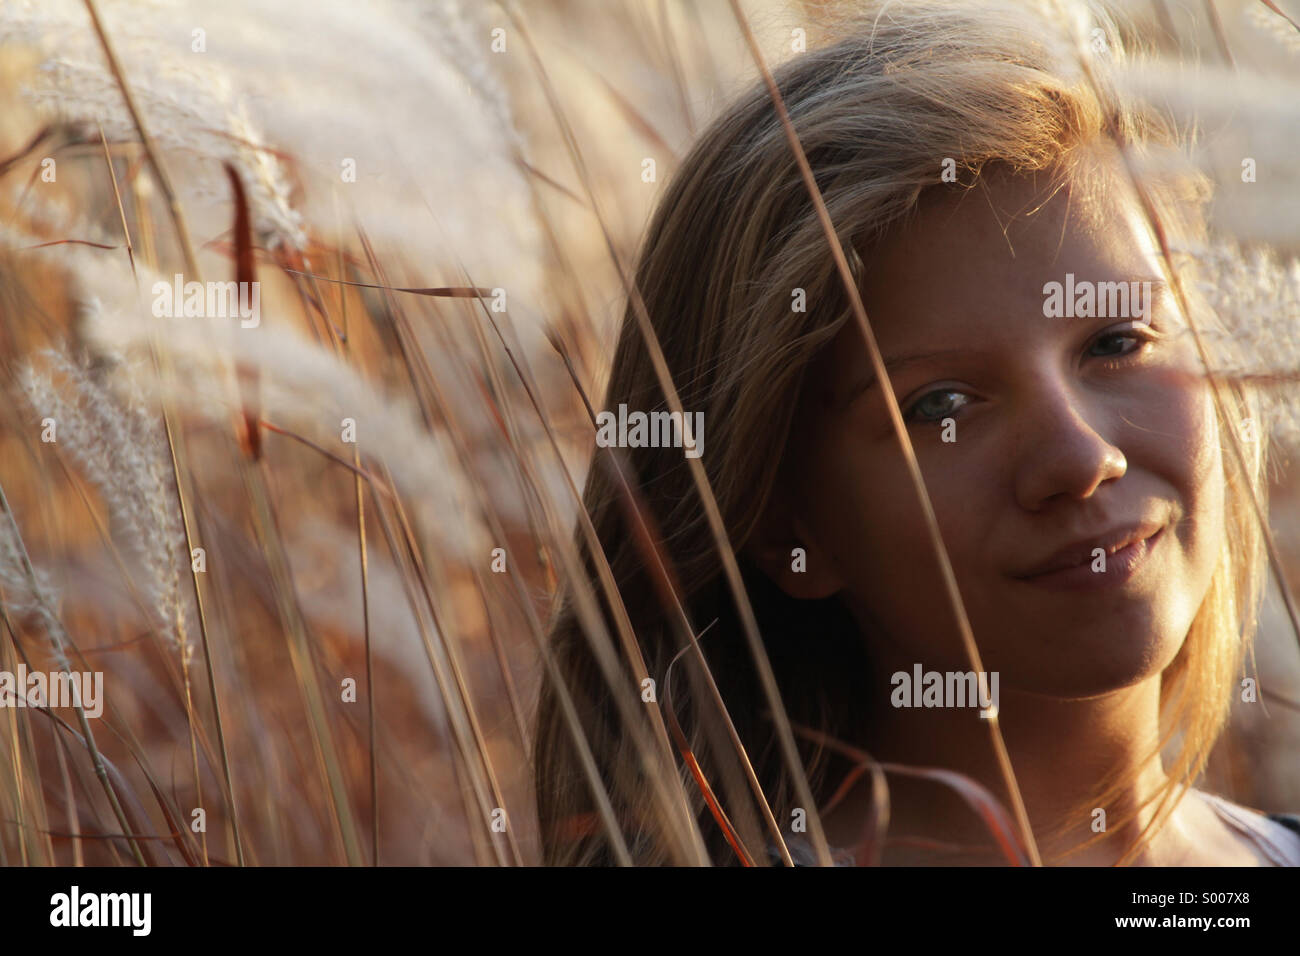 A young woman walks through Autumn grasses. - Stock Image